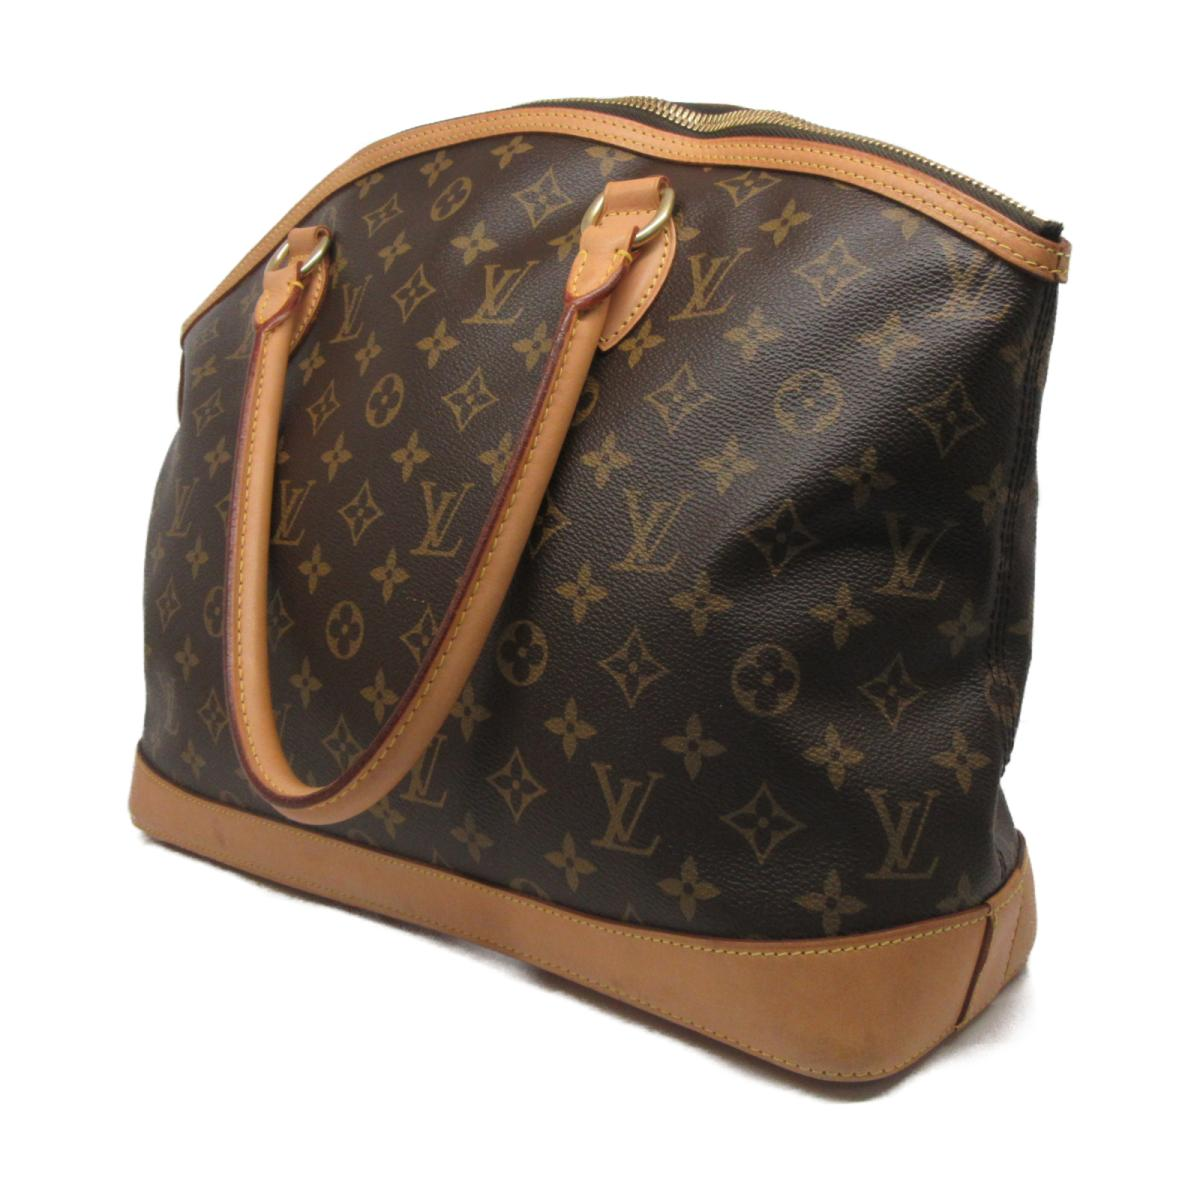 LOUIS VUITTON LOUIS VUITTON バッグ M40104 原花橫式肩背包 Lockit Horizontal M40104(mw2019)